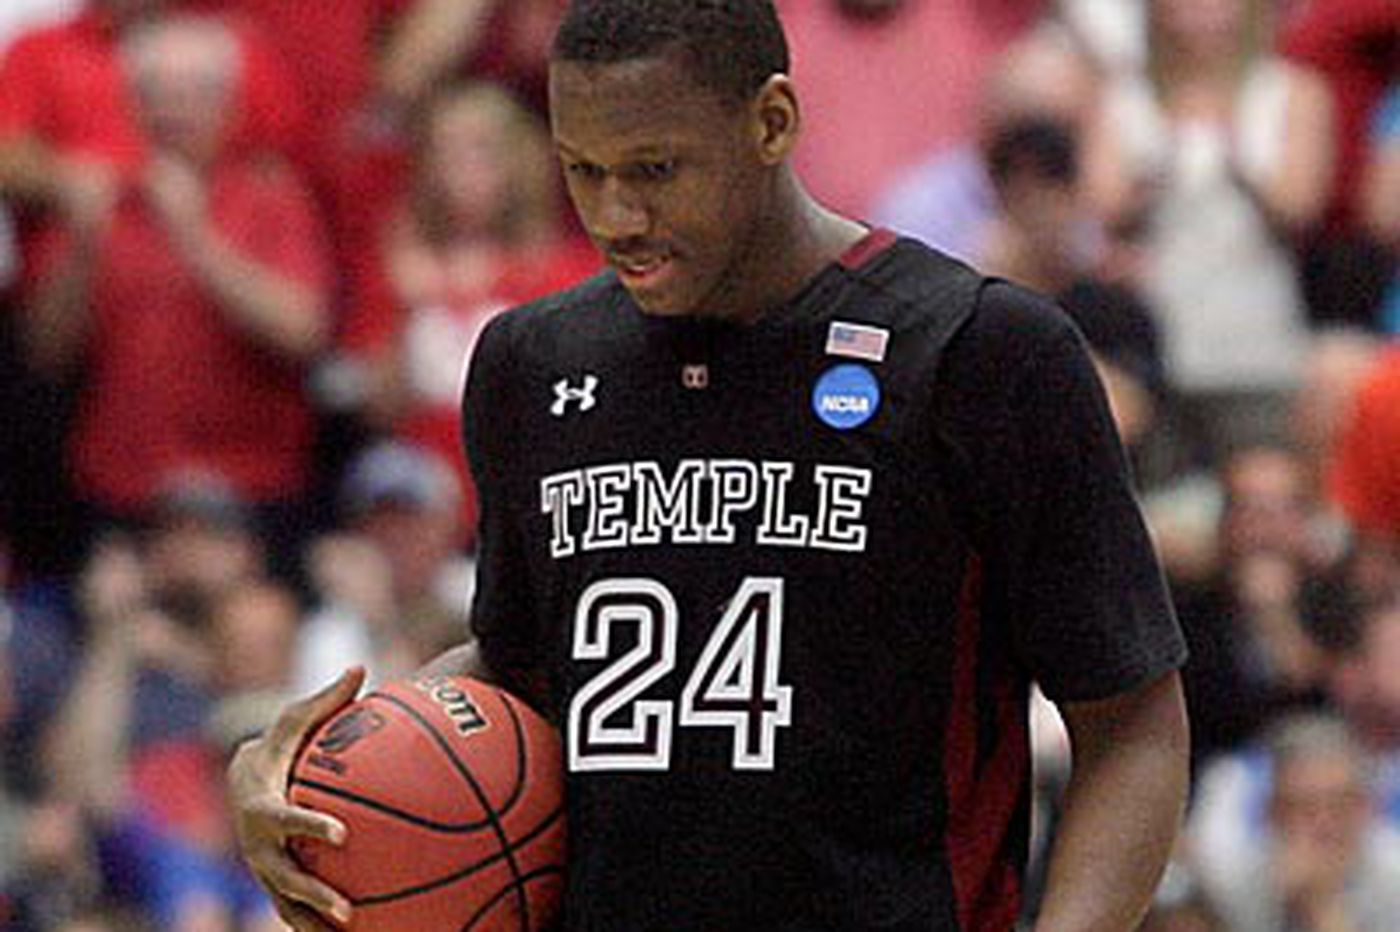 Temple's Allen to play in Reese's College All-Star Game